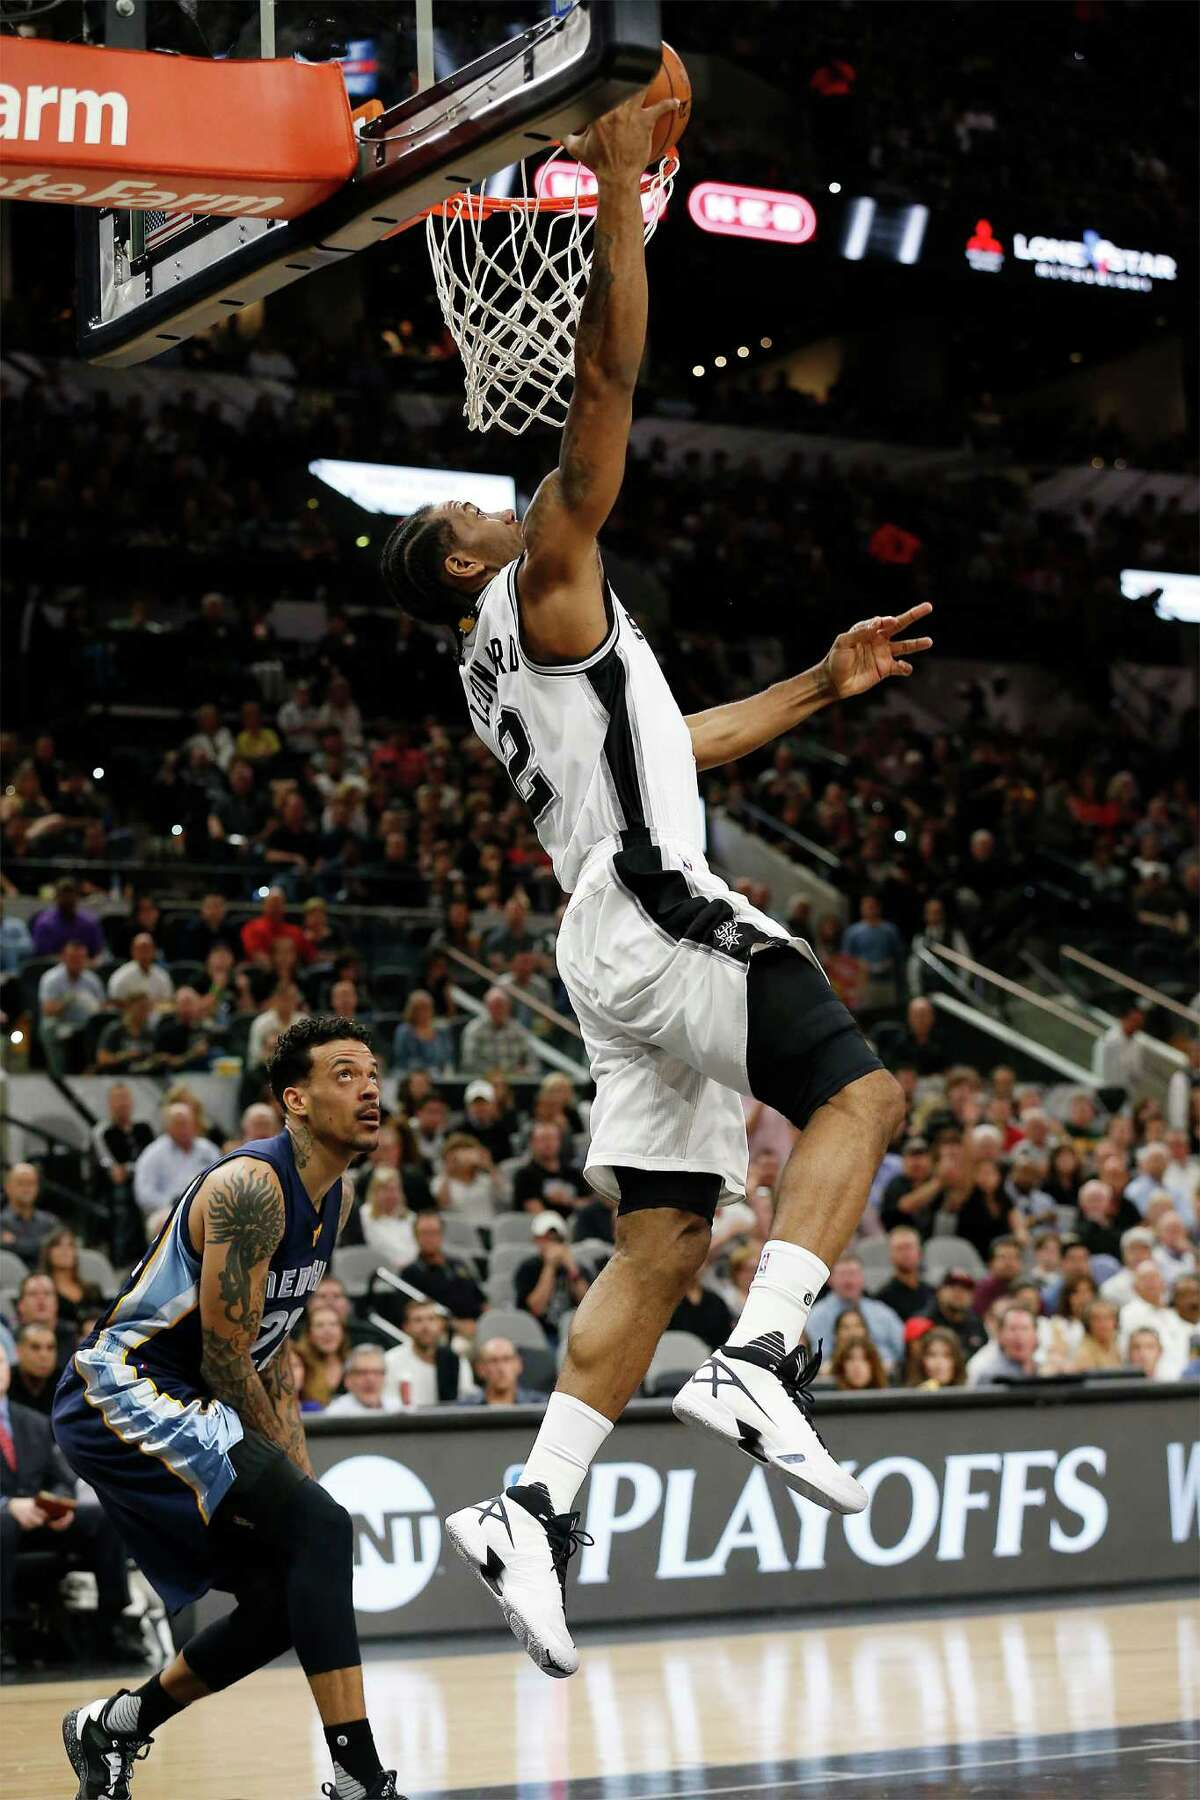 Spurs' Kawhi Leonard (02) goes for a dunk against Memphis Grizzlies' Matt Barnes (22) at the AT&T Center in Game 2 of the first round of Western Conference playoffs on Tuesday, Apr. 19, 2016. (Kin Man Hui/San Antonio Express-News)